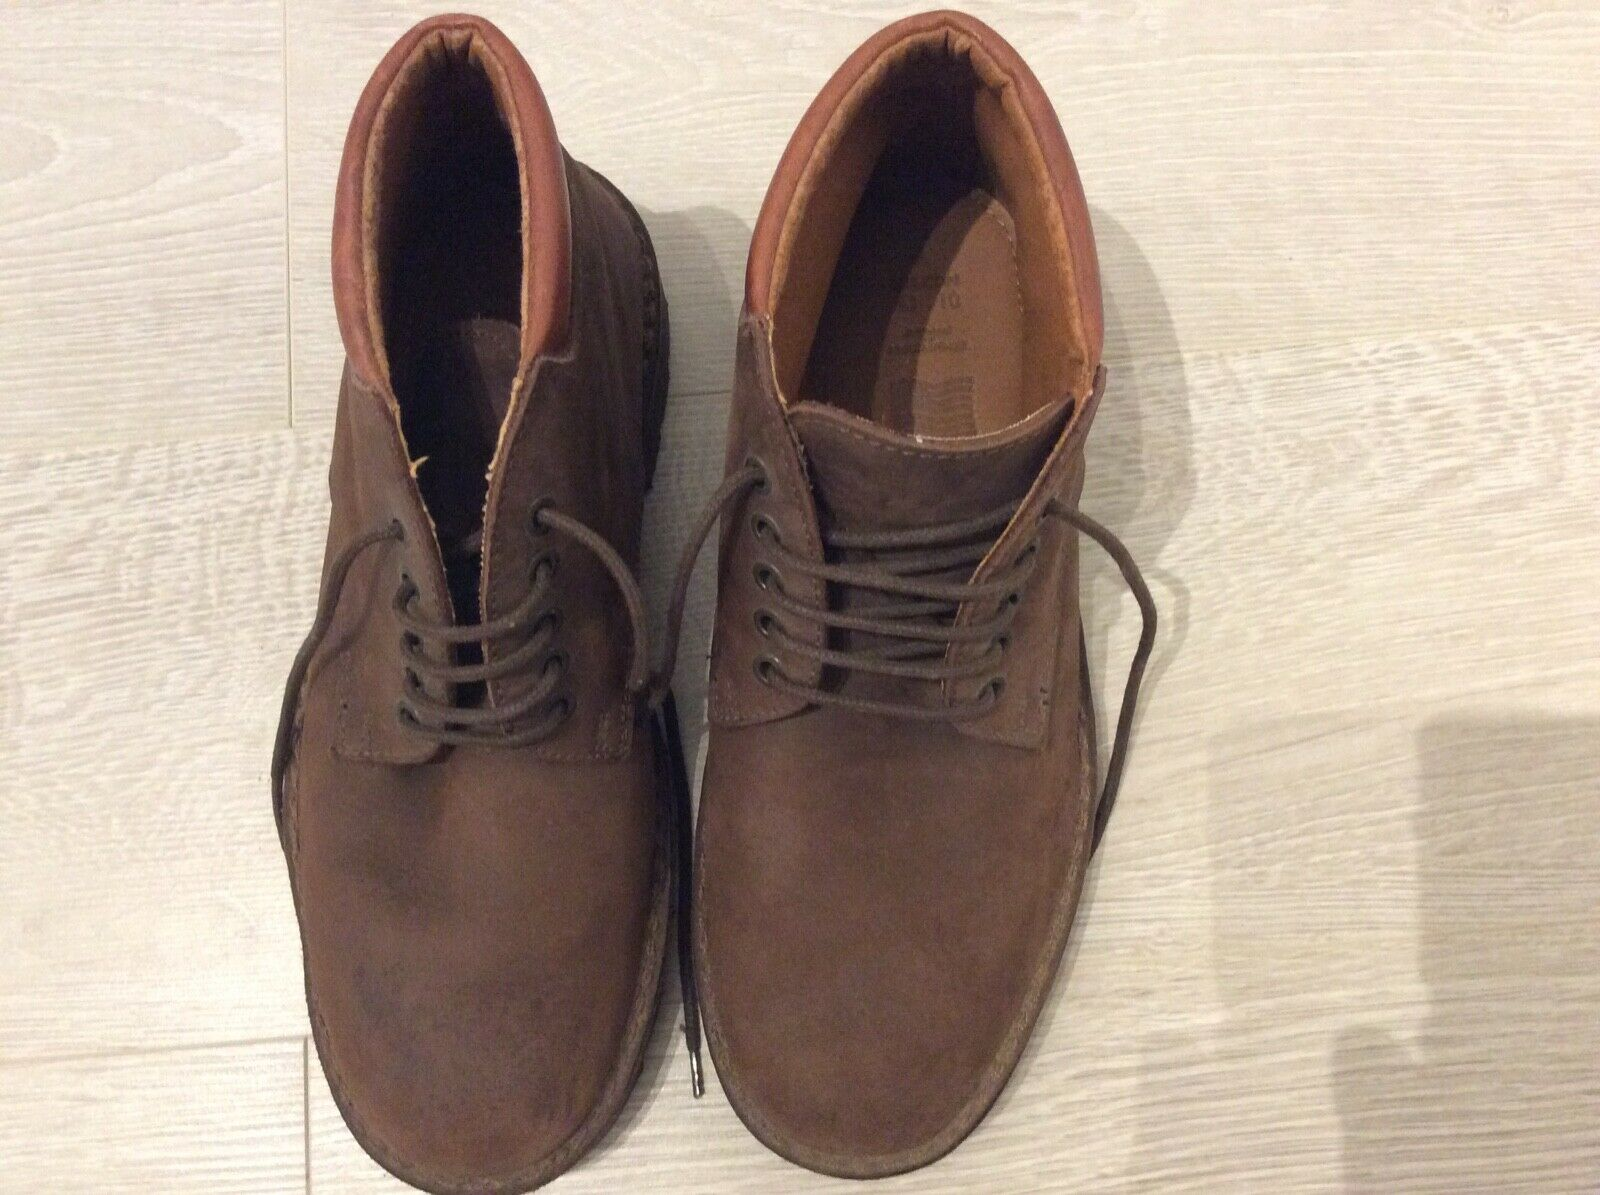 Marks & Spencer Men's brown lace up boots. Size 9. NEW. Leather uppers. Nubuck l